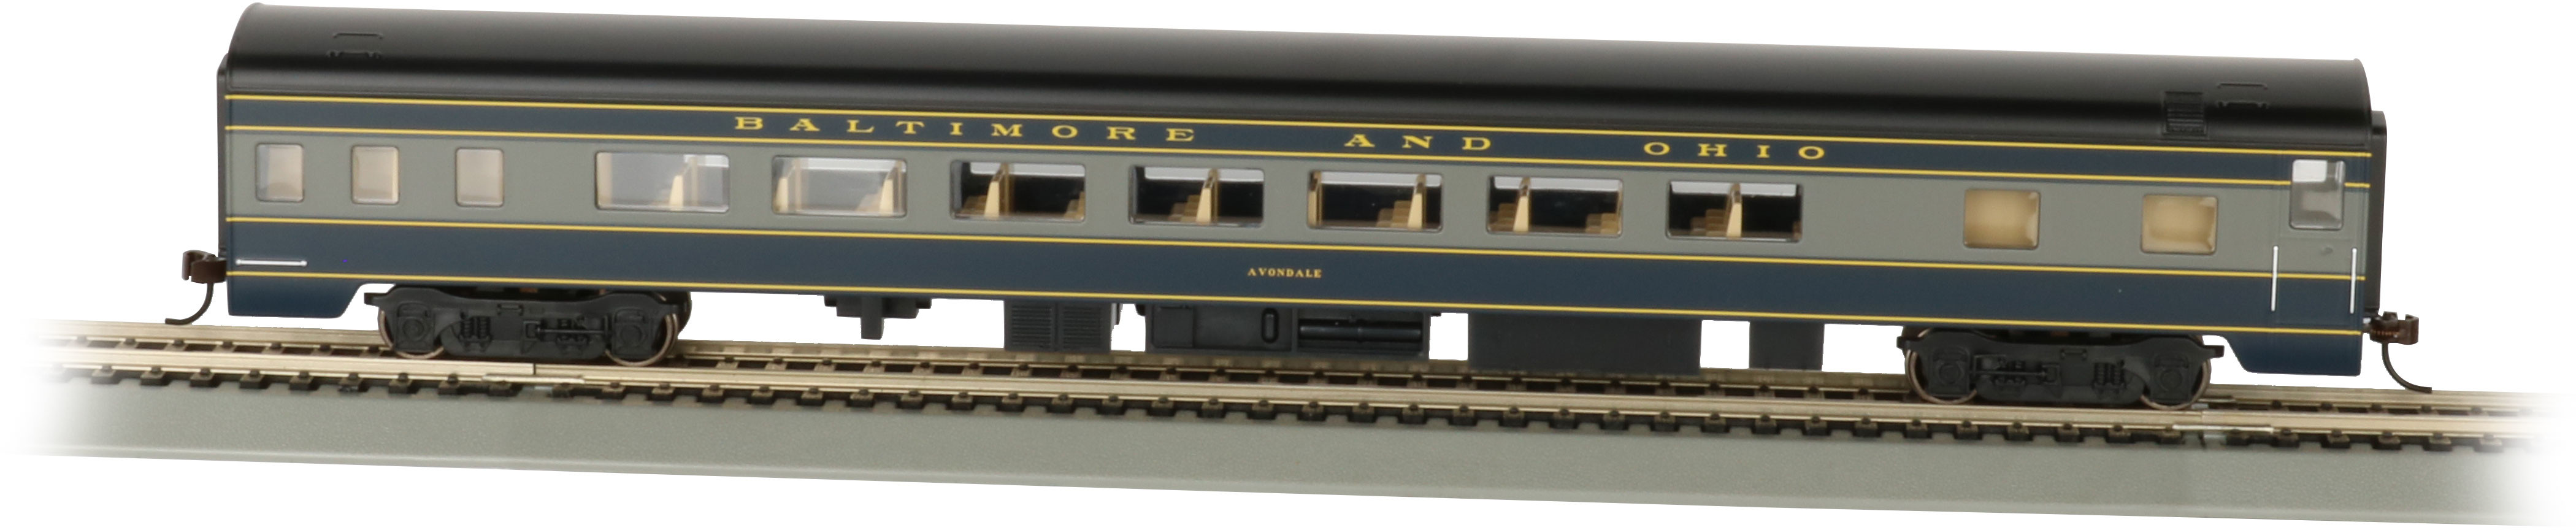 Bachmann 14203 USRA 85' Smooth-side Image